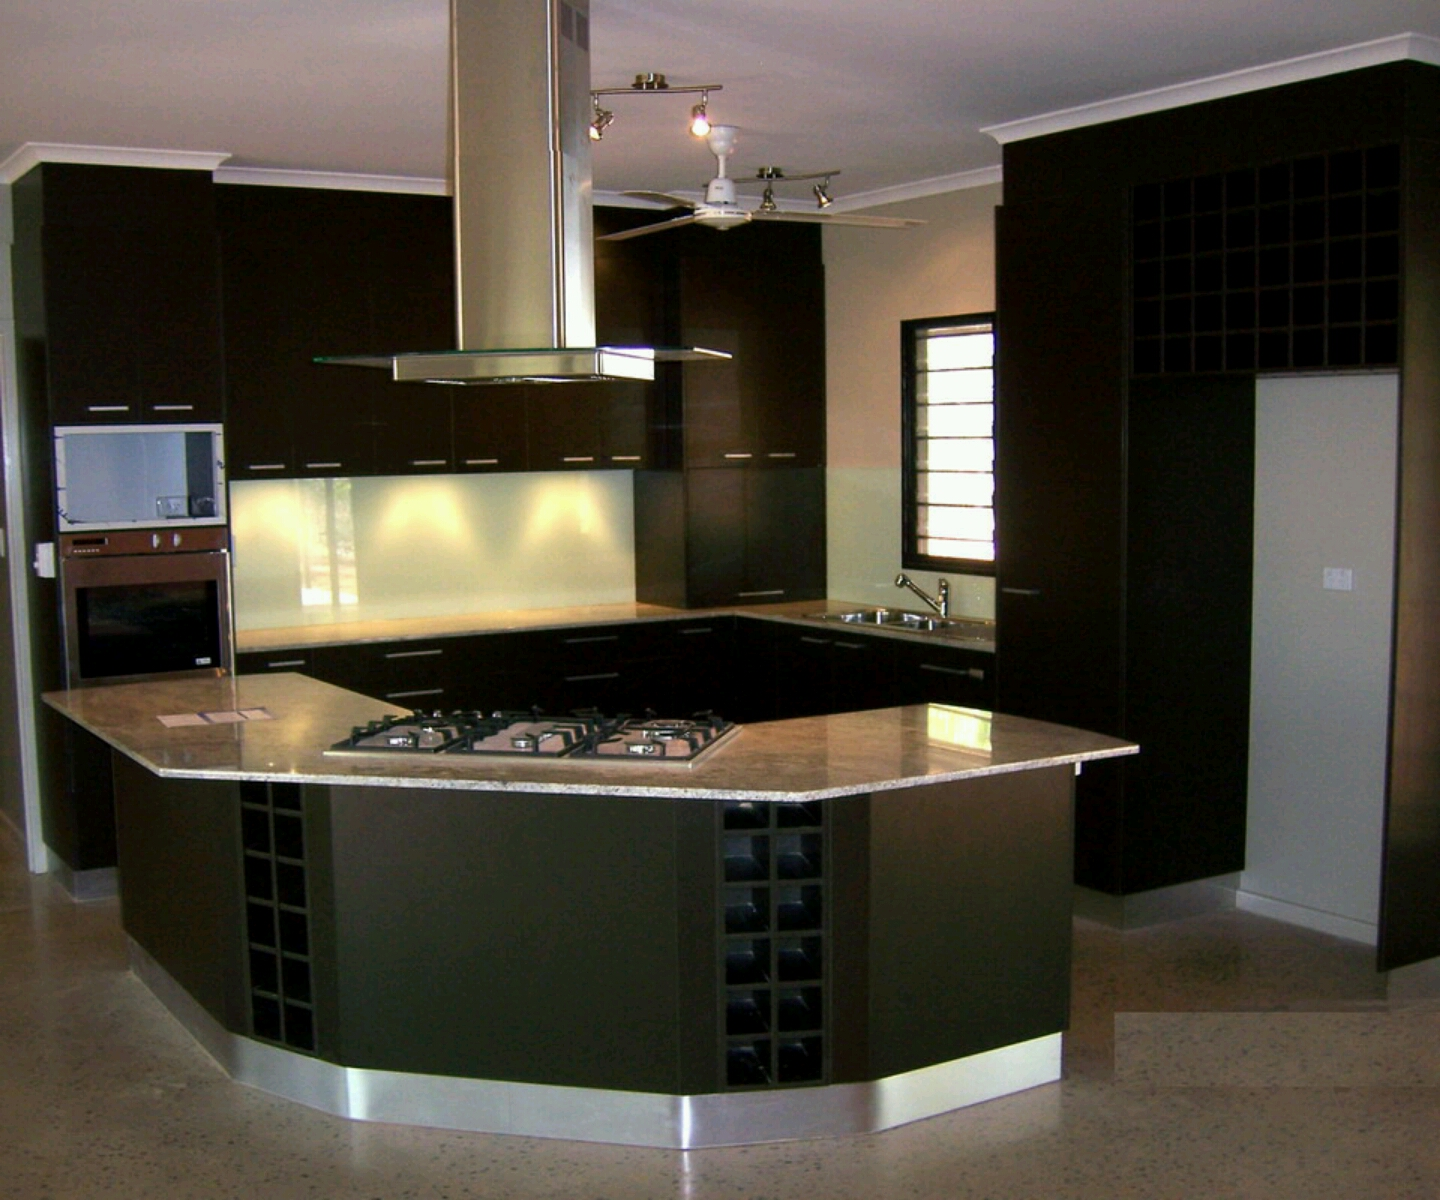 modern kitchen cabinets designs best ideas.